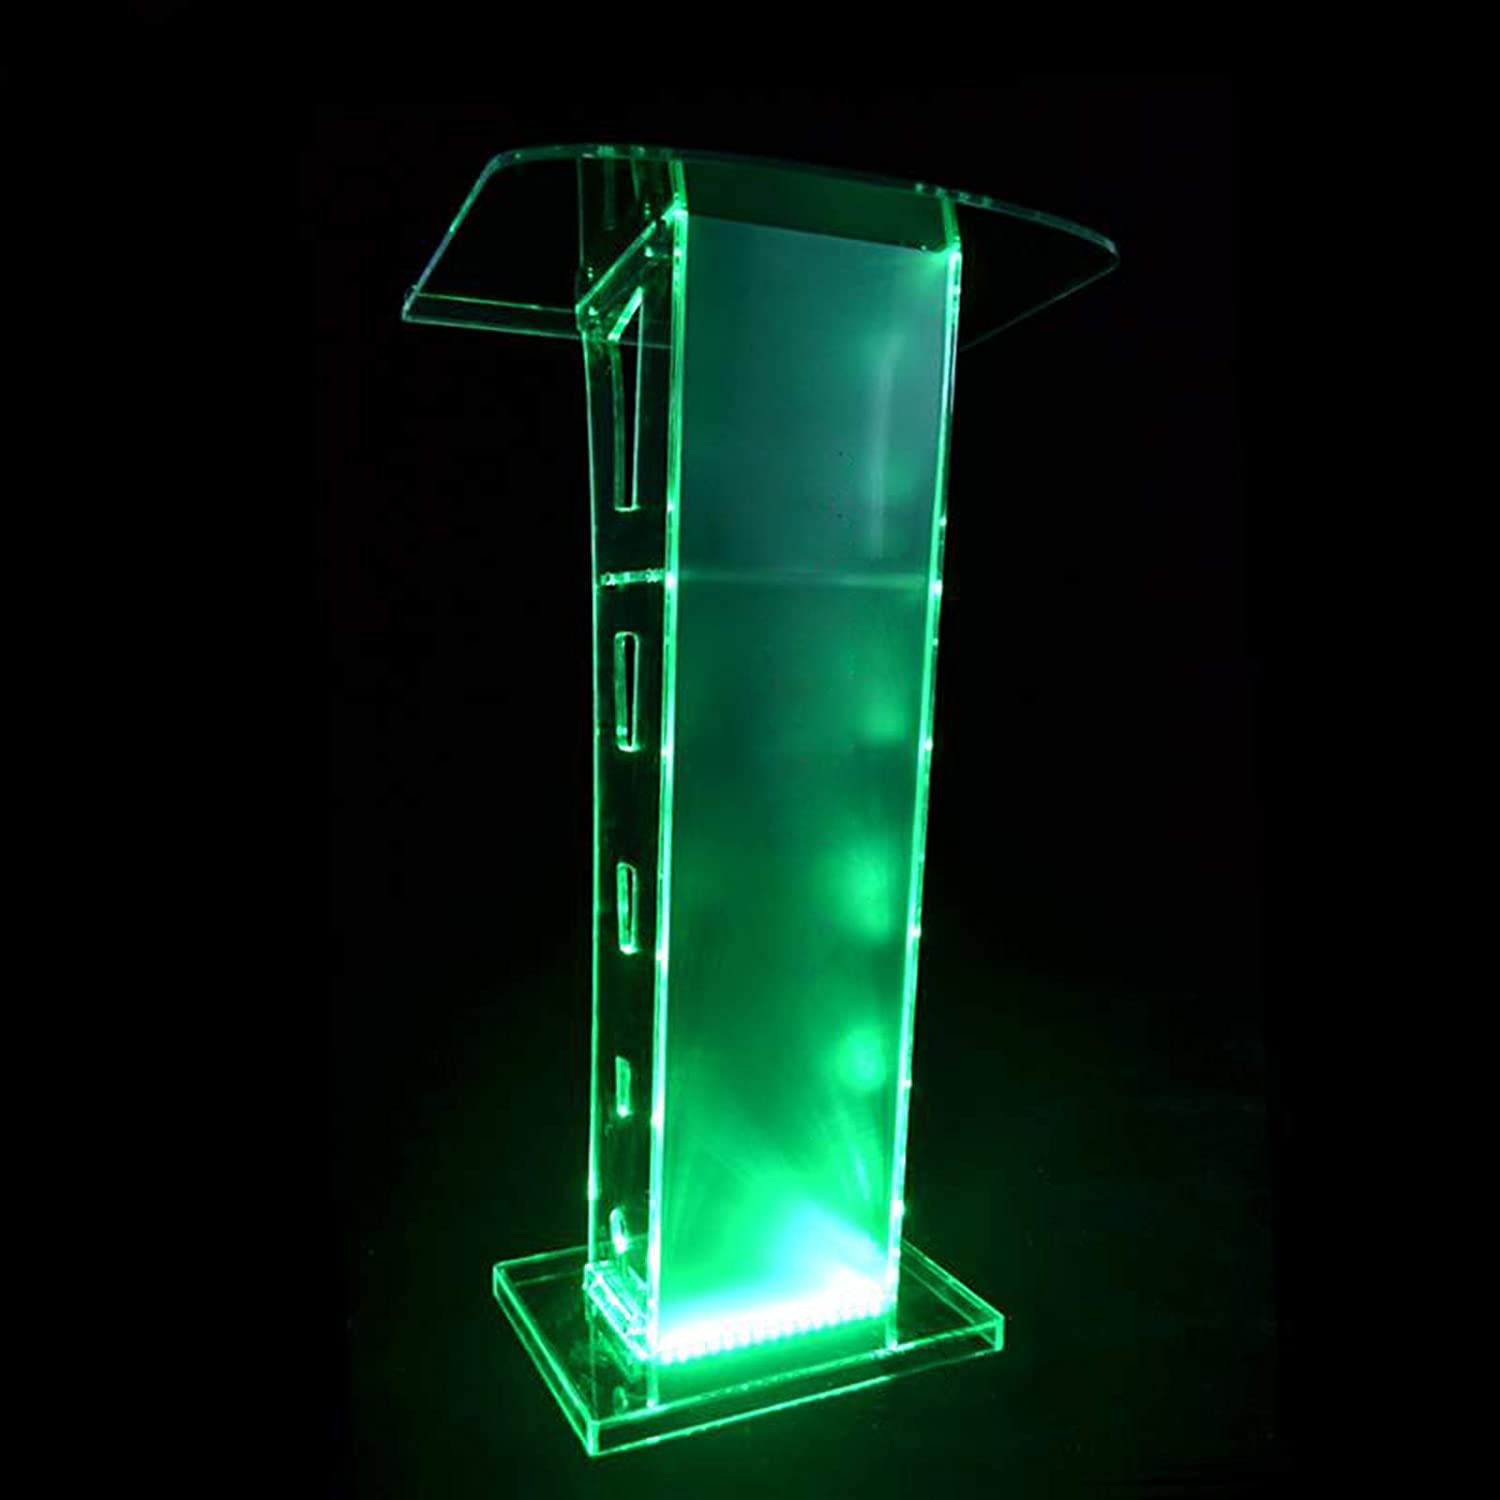 Clear Acrylic Plexiglass Podium Acrylic Lectern Conference Pulpit Acrylic Podium Clear Church Lectern Pulpit for Office//Meeting Rooms//Churches Height 110cm